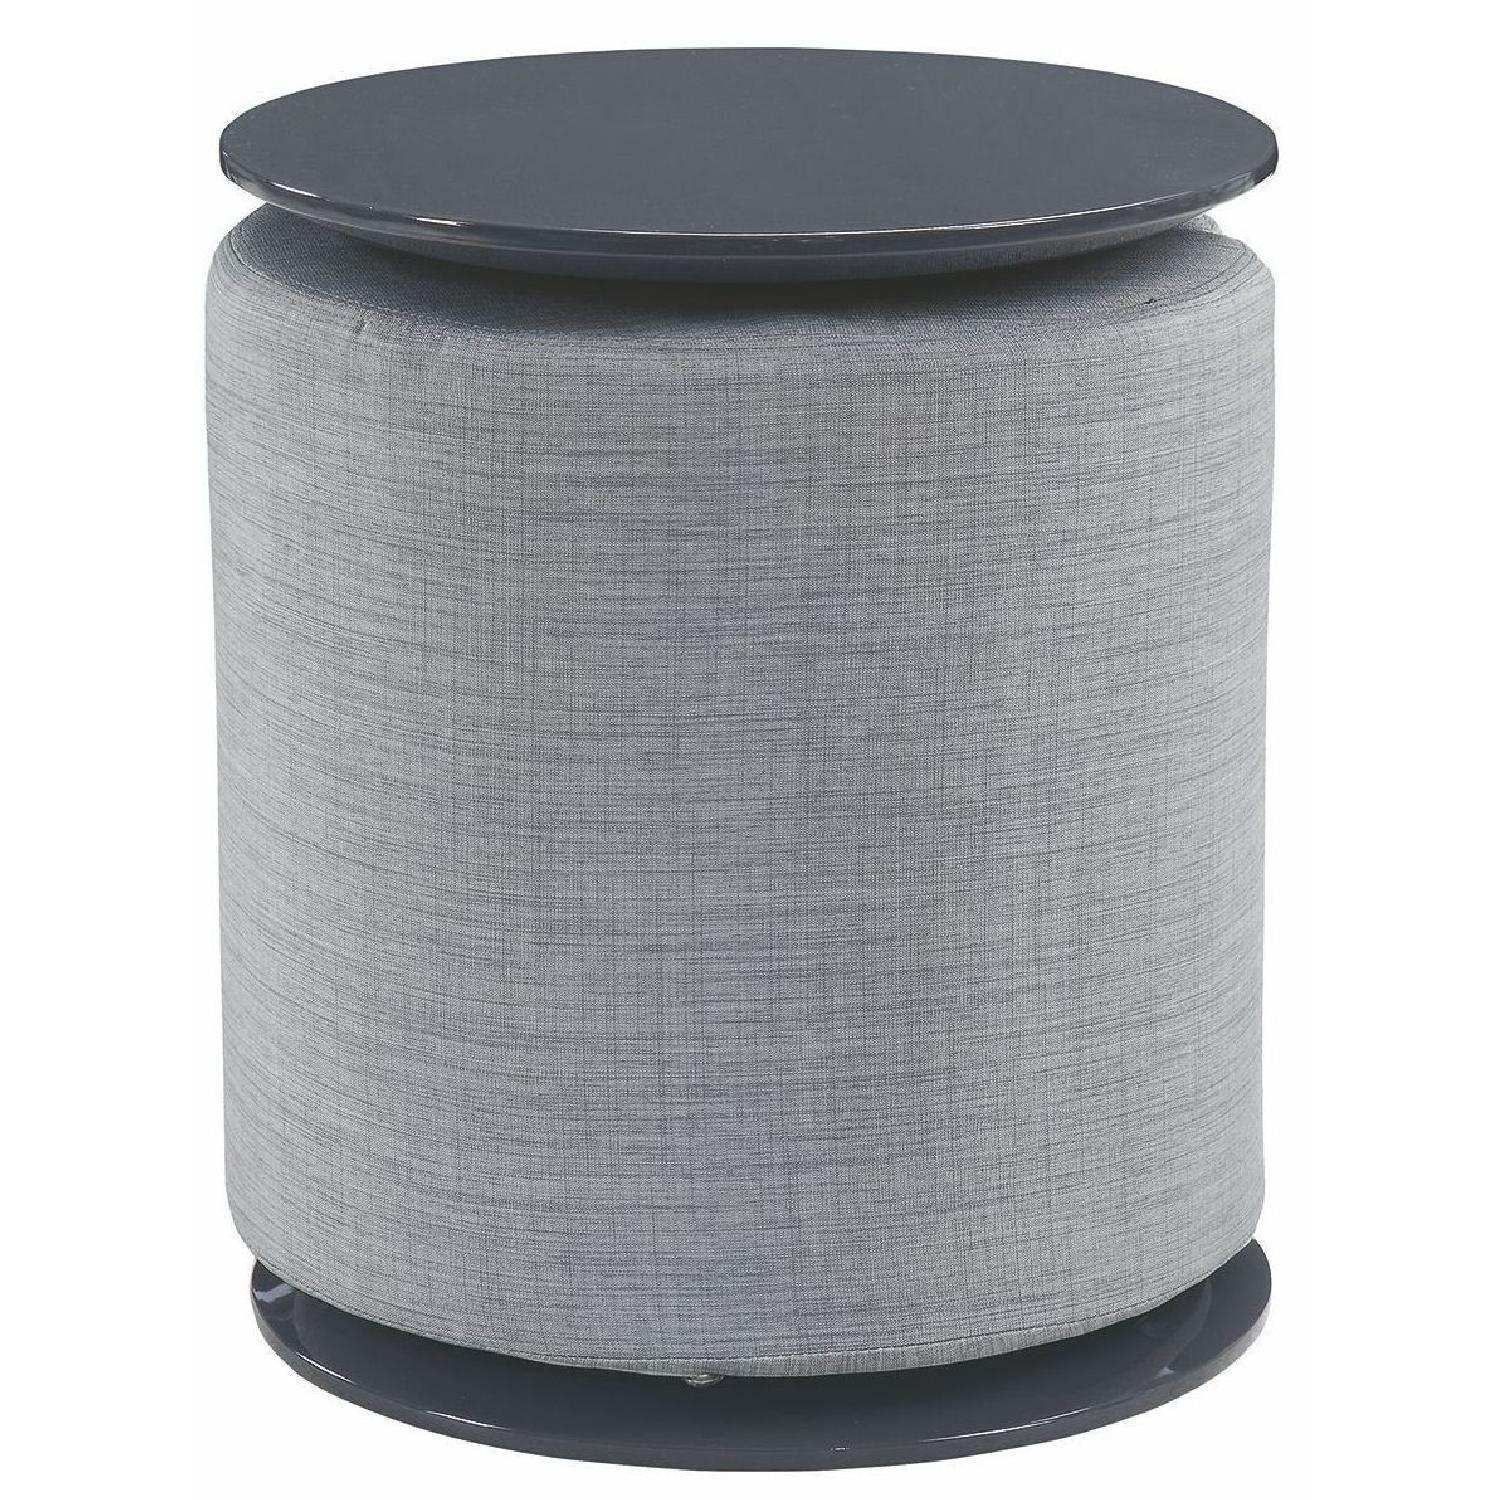 High Gloss Round Side Table w/ Detachable Grey Ottoman